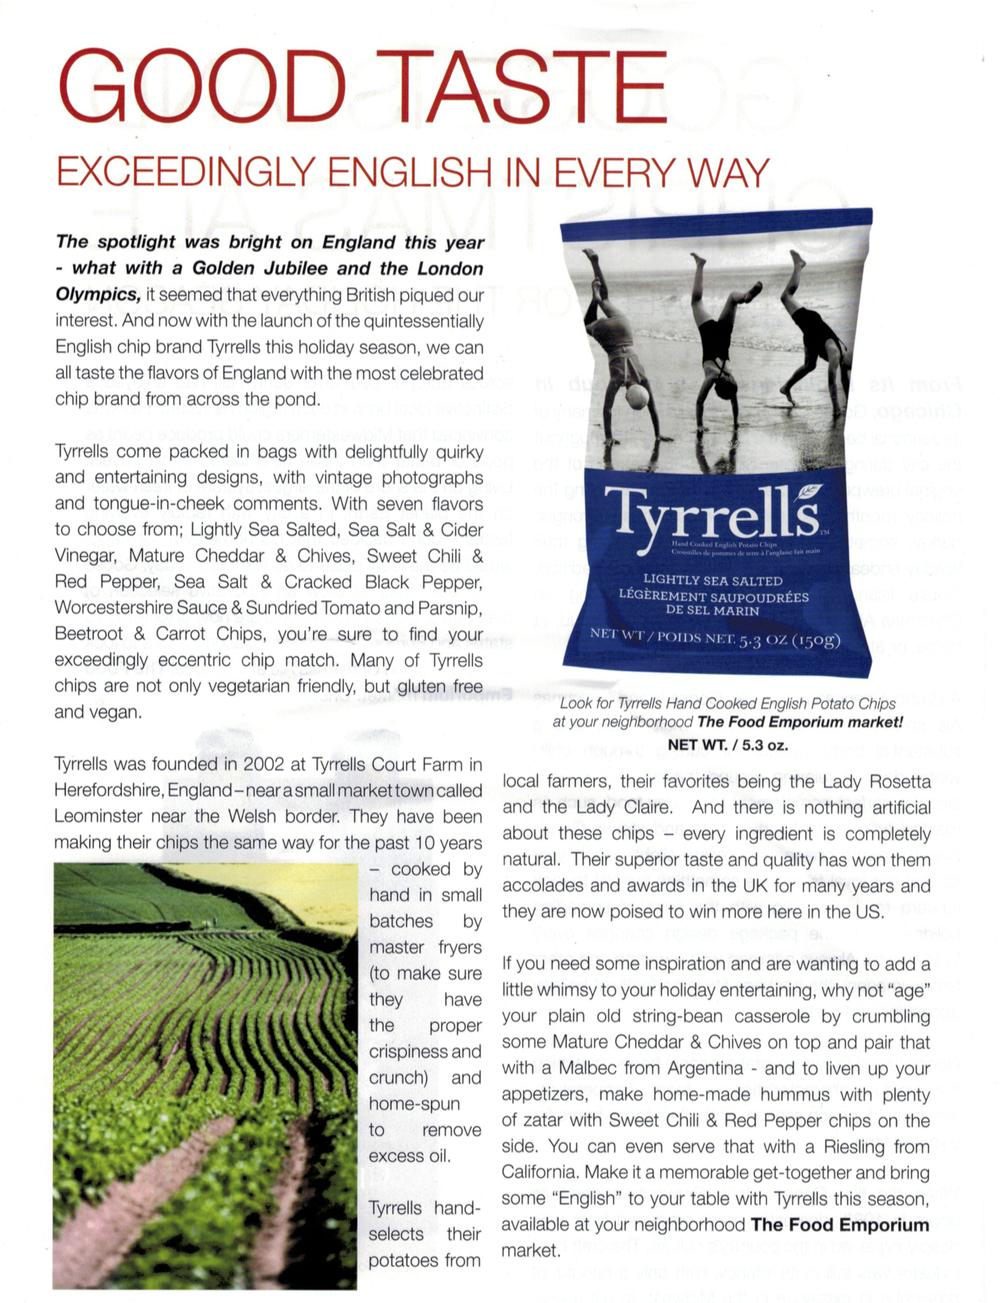 Tyrrells-TASTE Magazine - Editorial - Holiday 2012.jpg